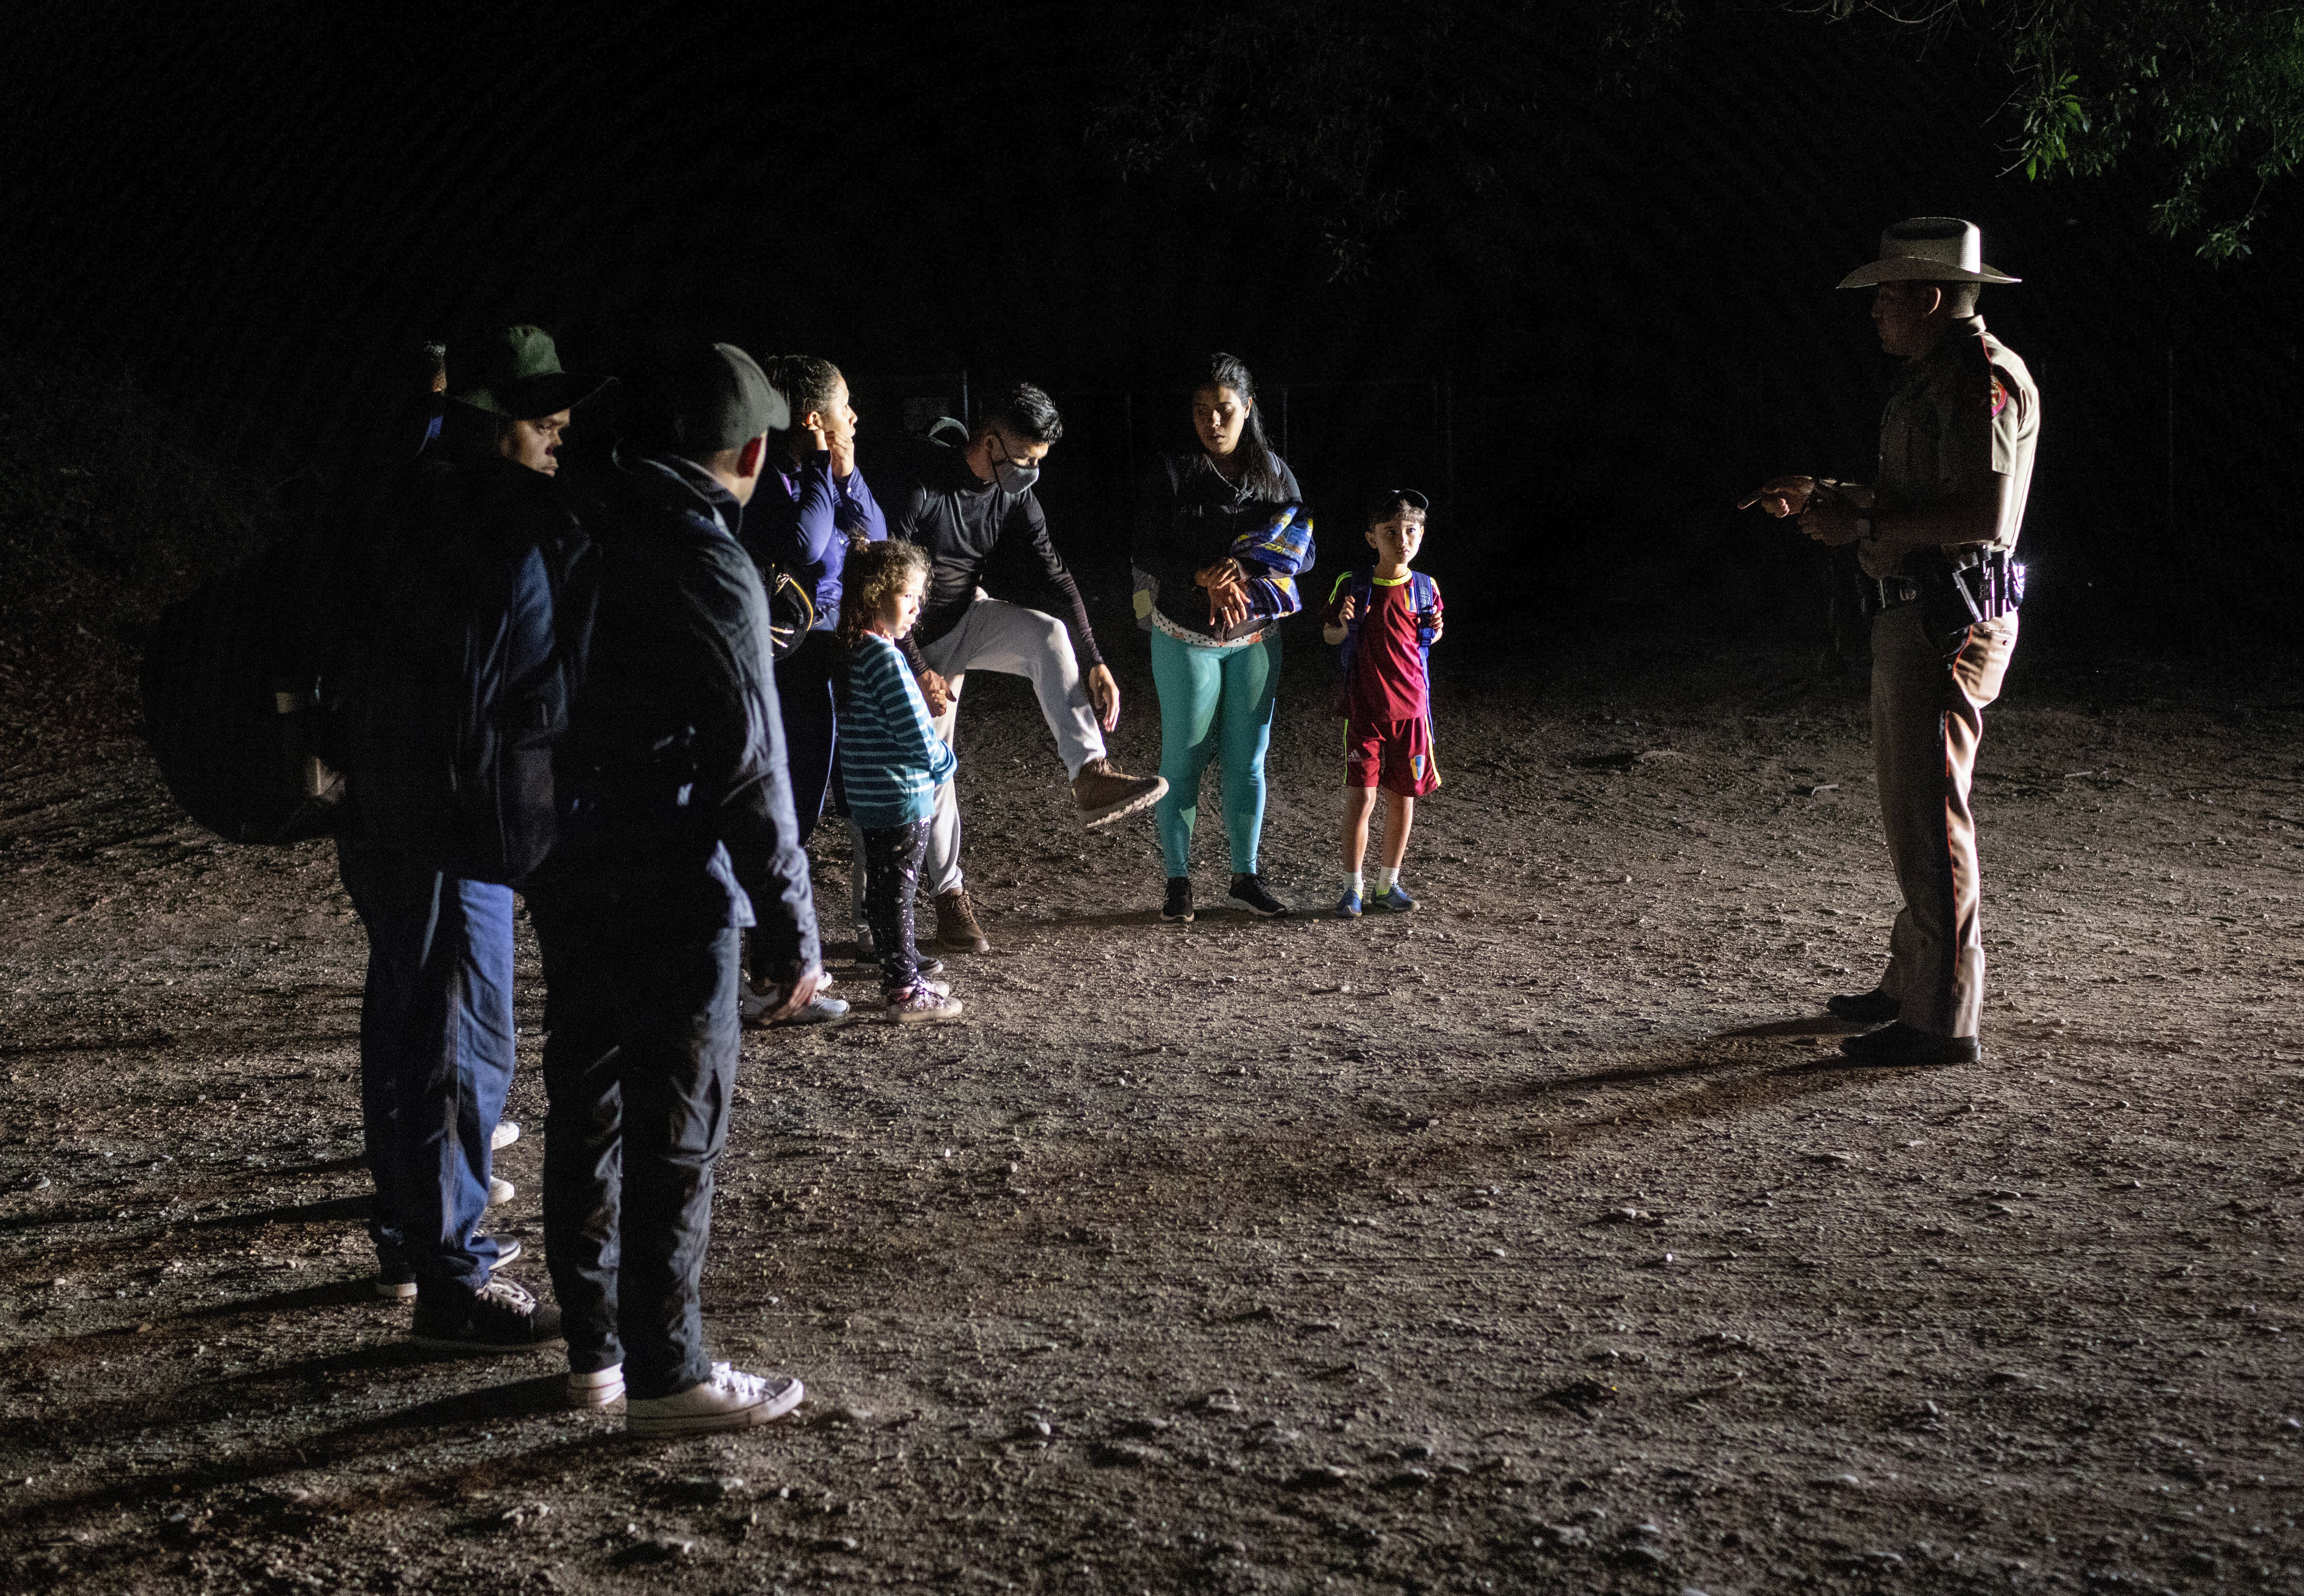 A Texas state trooper advises Venezuelan immigrants to remove their shoelaces before they are taken into custody by U.S. Bord